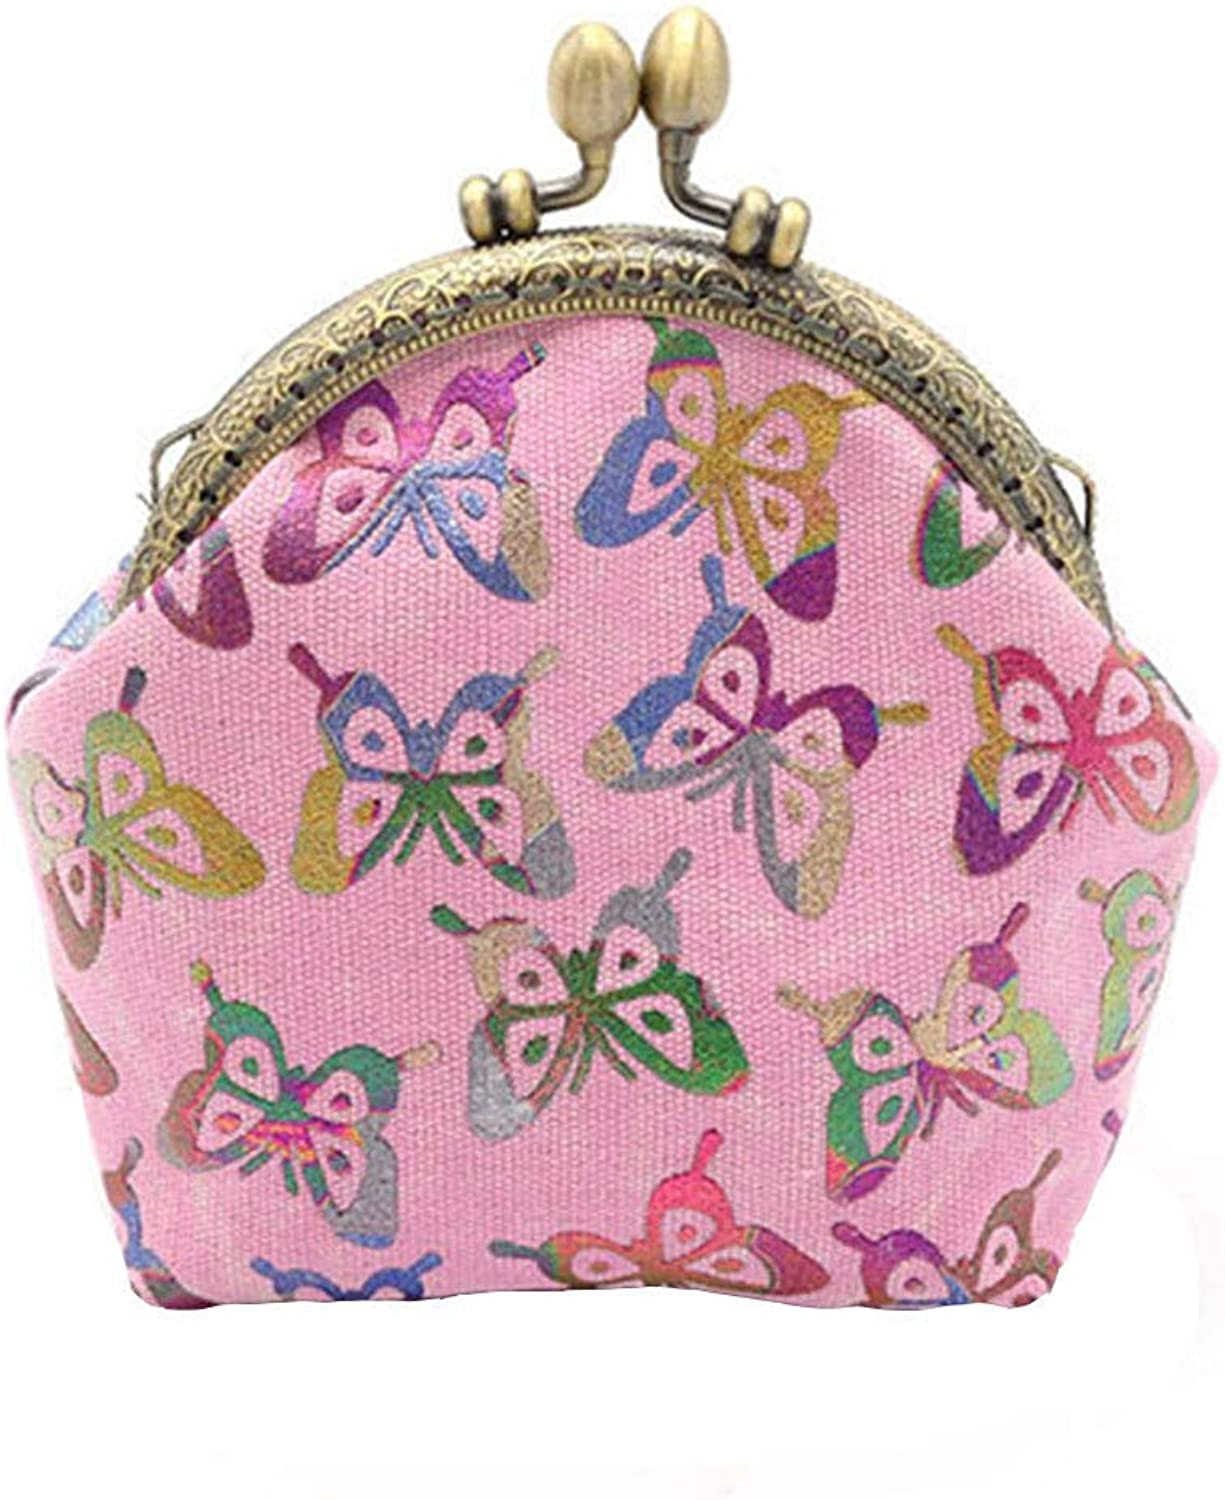 New fashion ladies wallet Lady Vintage Butterfly Mini Hasp Coin Purse Wallet Clutch Bag (color   272, Size   Pink)